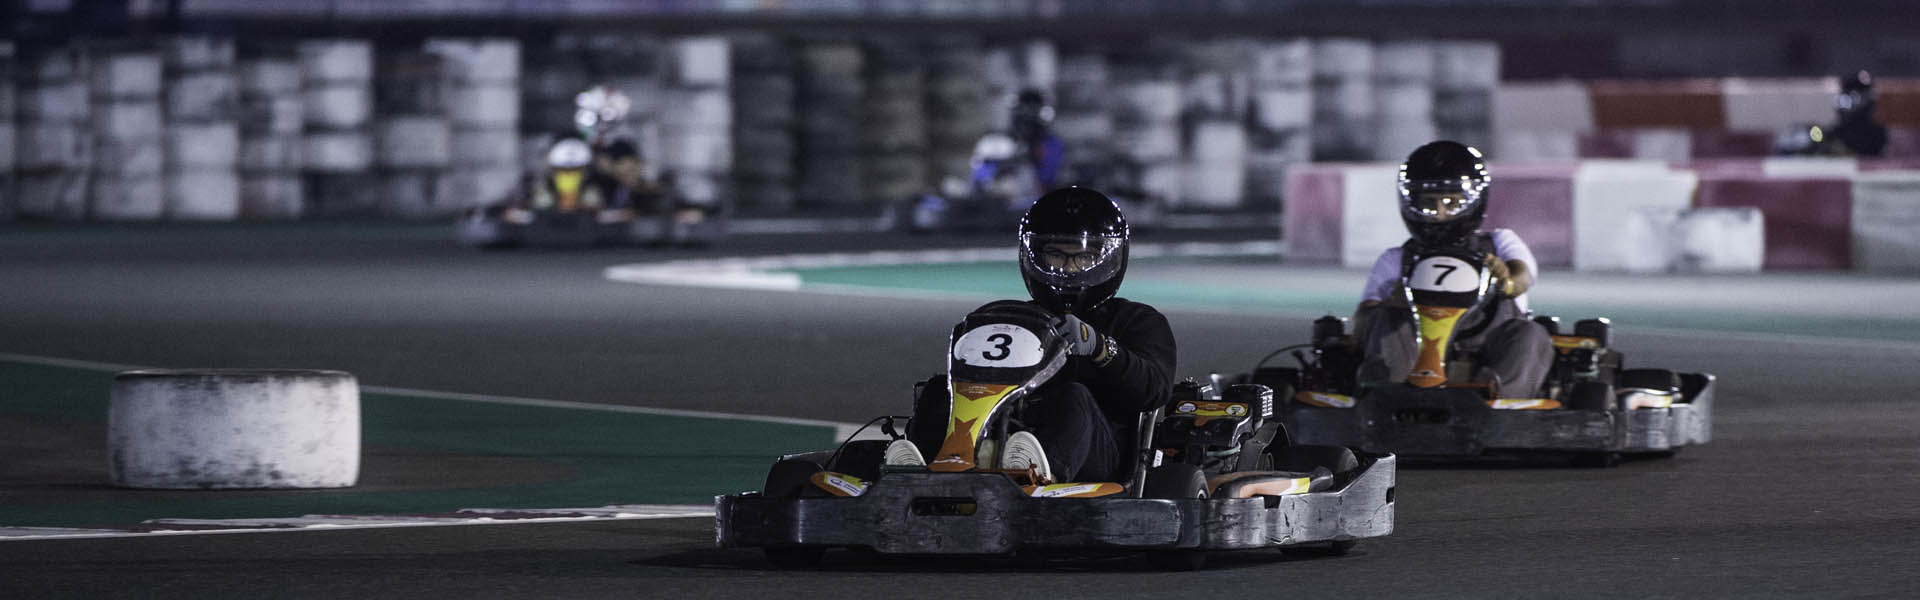 homekarting